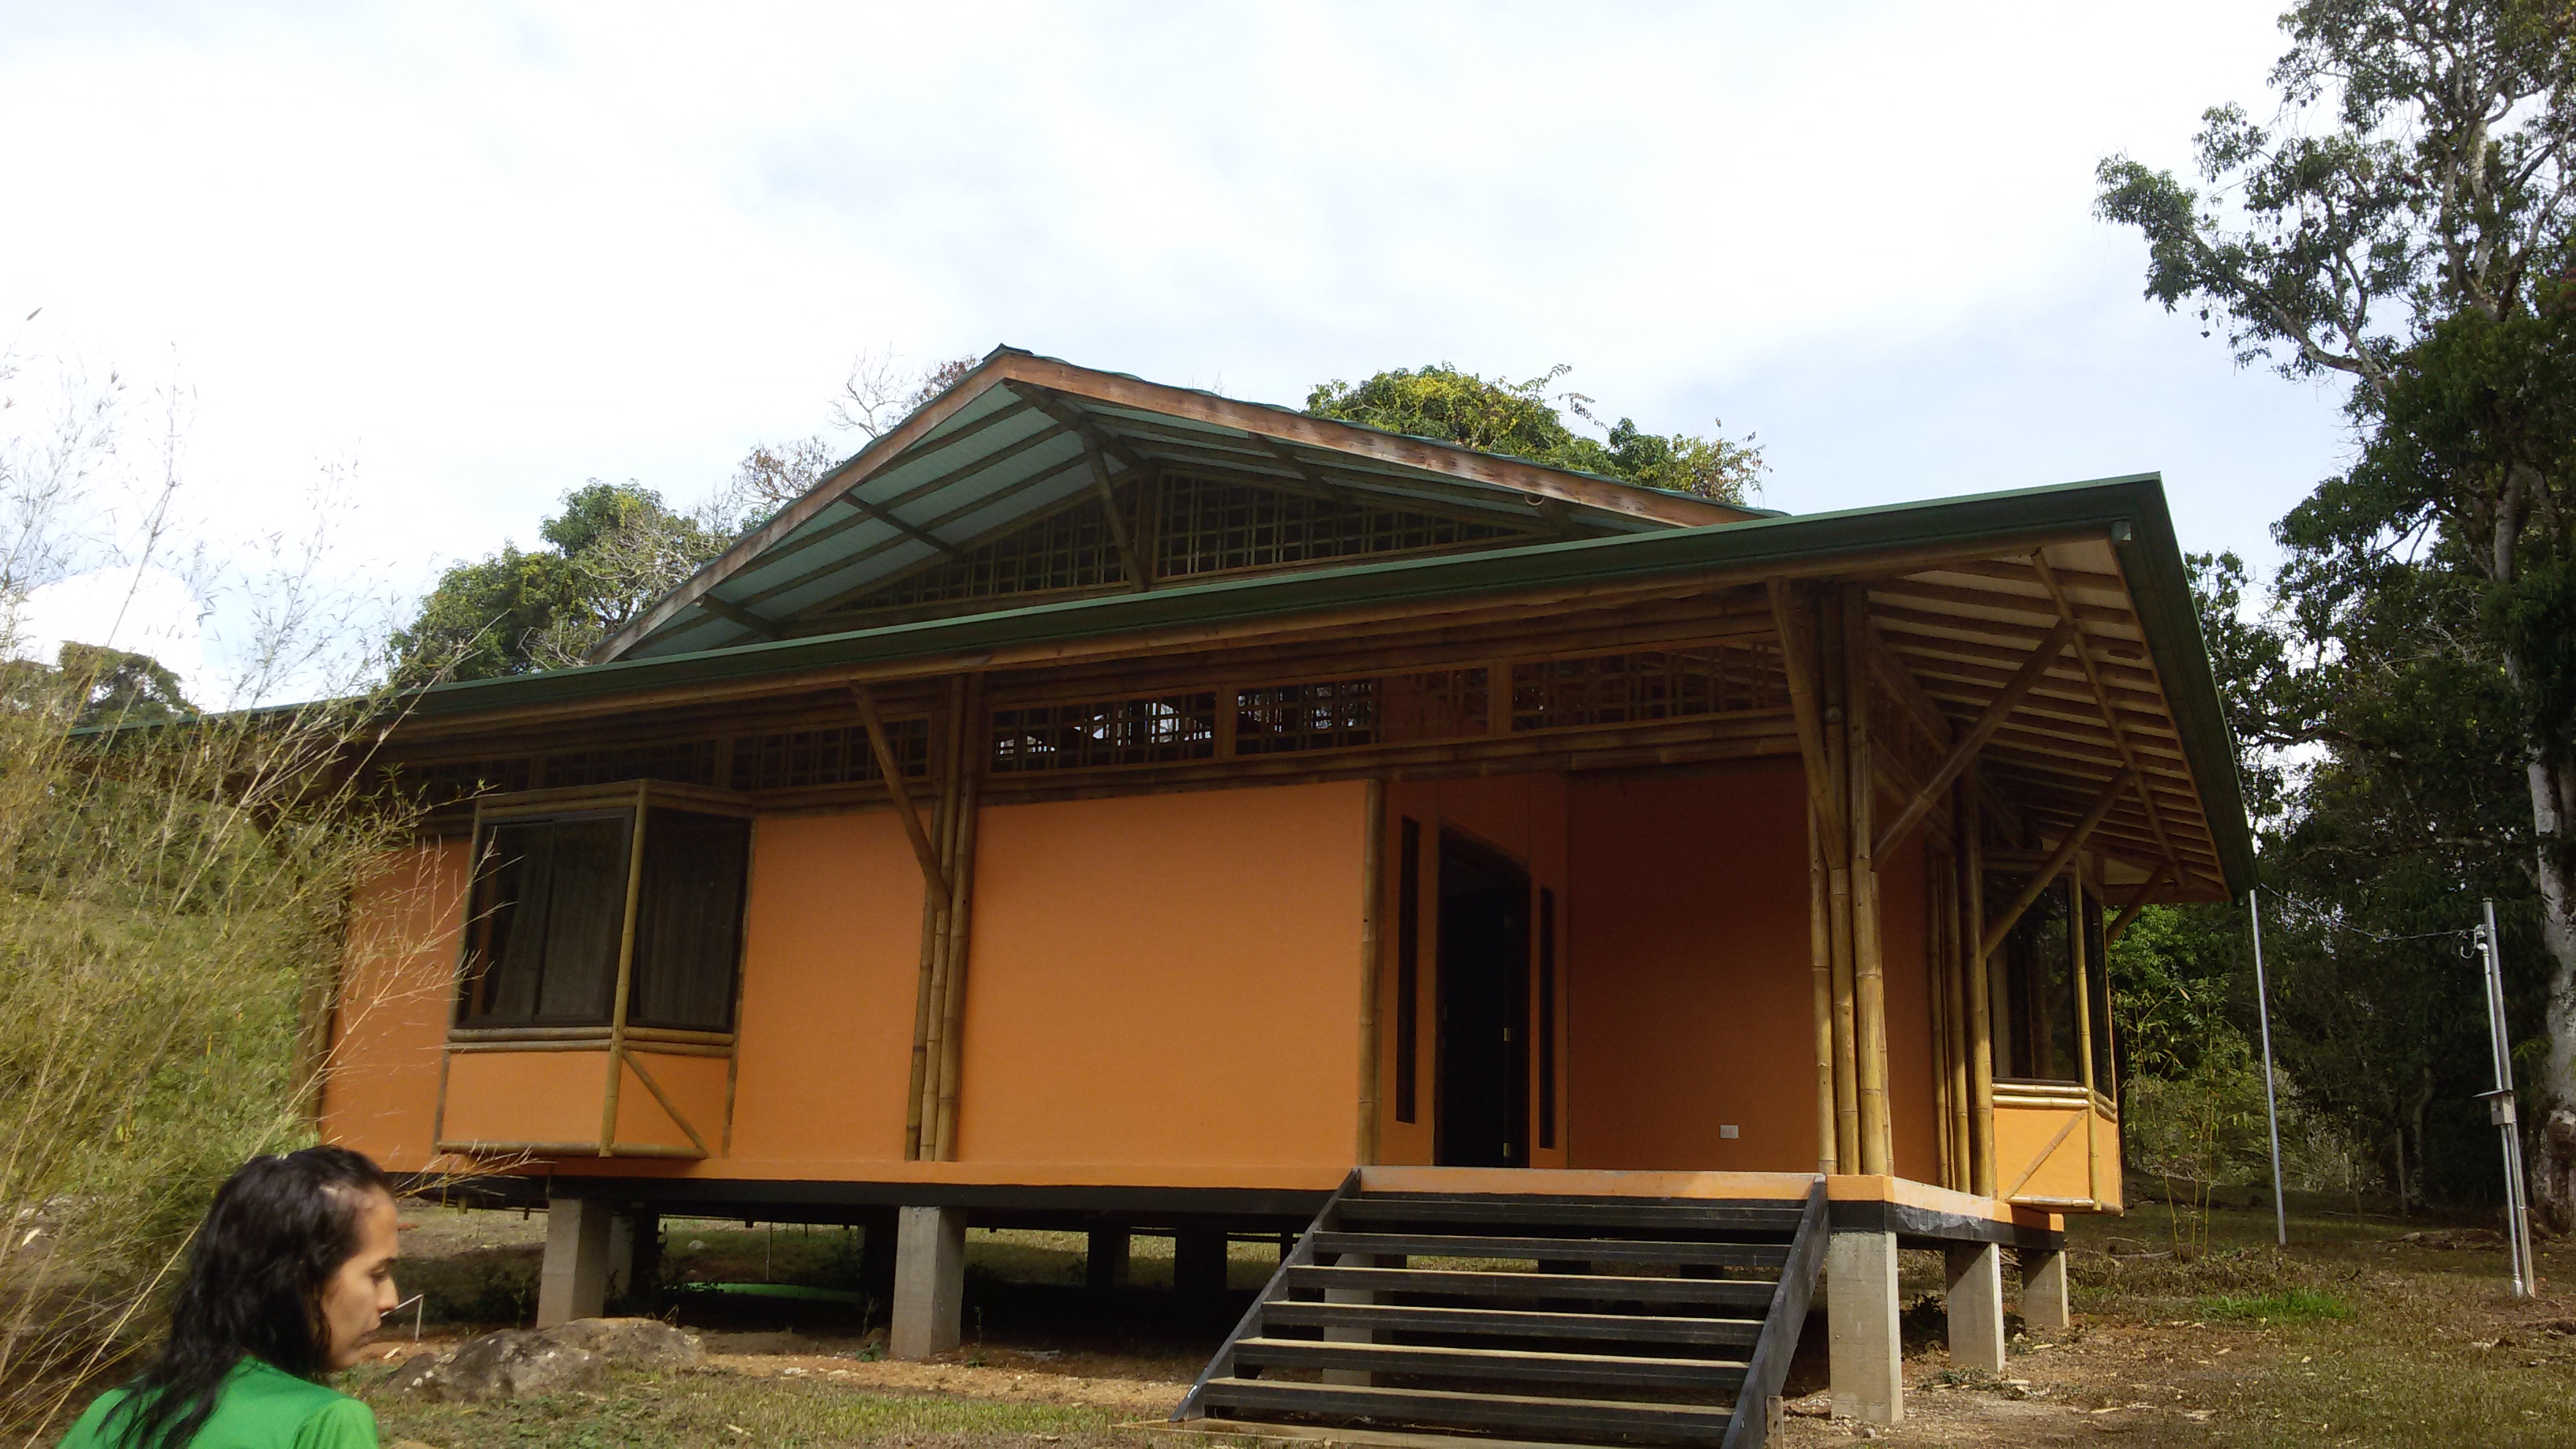 Green building in the tropics- thermal m | hip-E habitat on